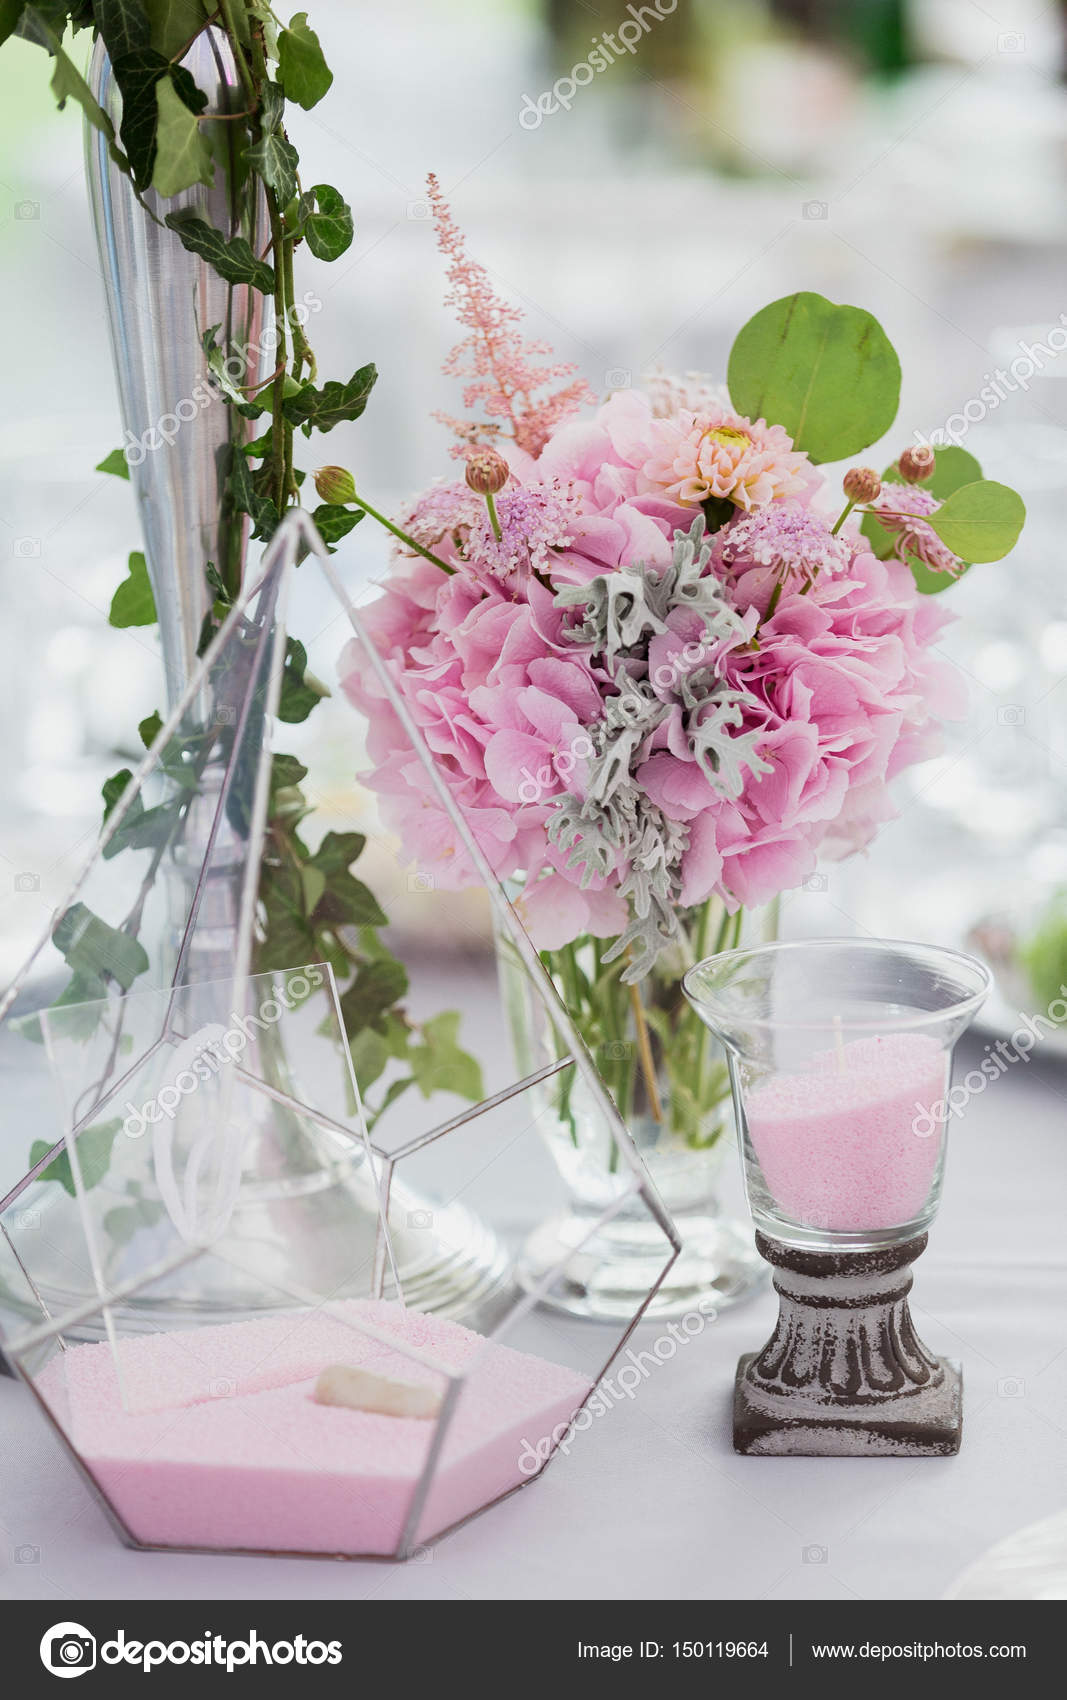 Wedding day with beautiful flowers stock photo 3element 150119664 wedding day with some beautiful flowers photo by 3element izmirmasajfo